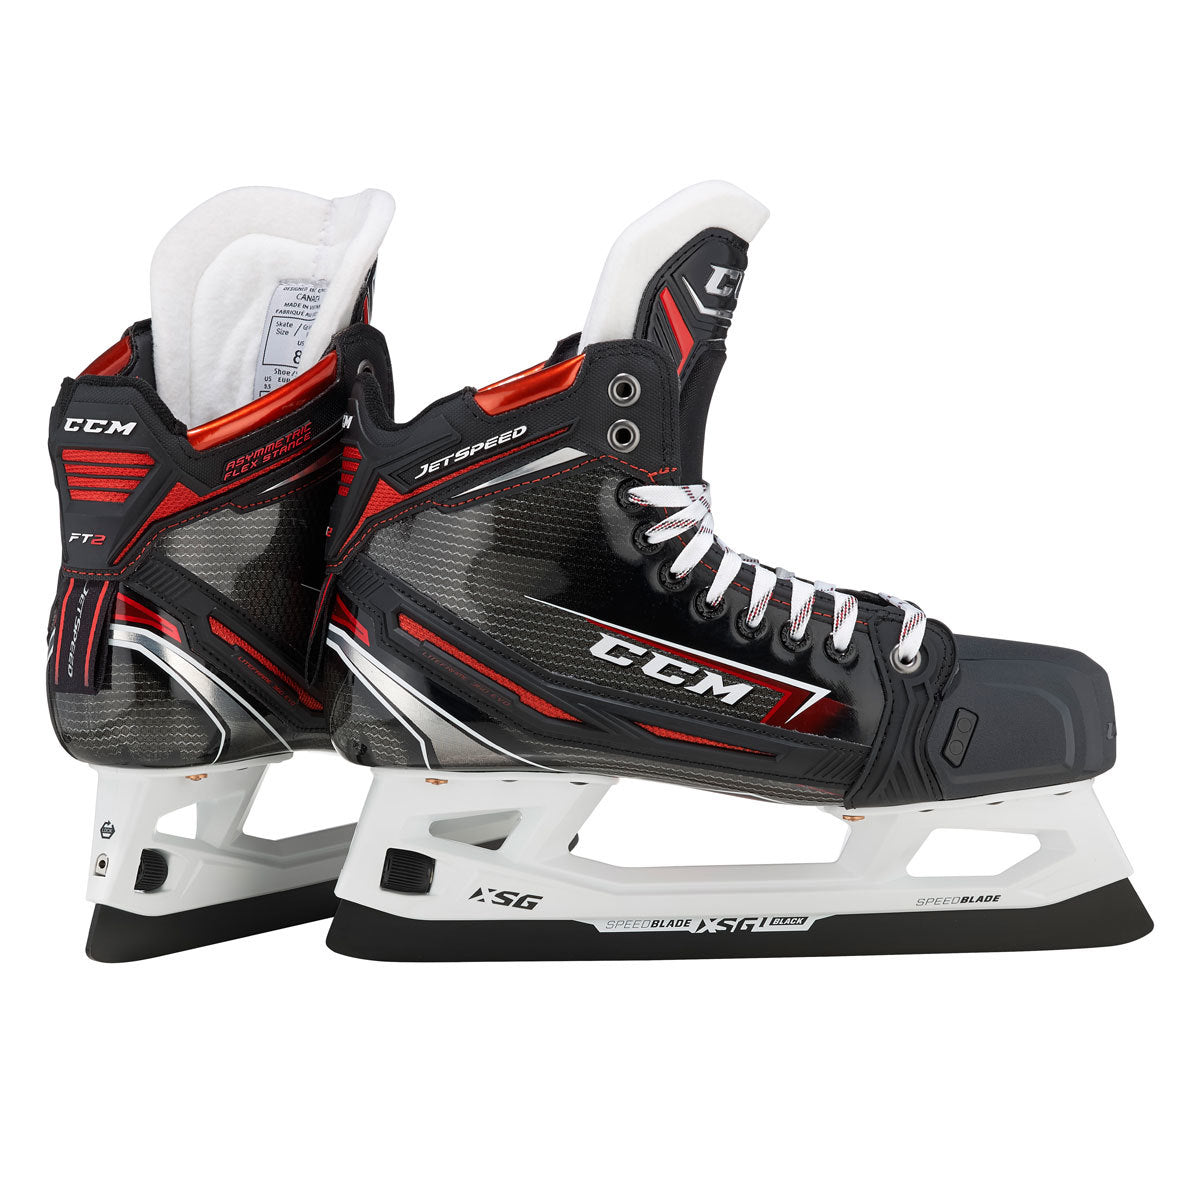 JetSpeed FT2 Sr (Total Custom)